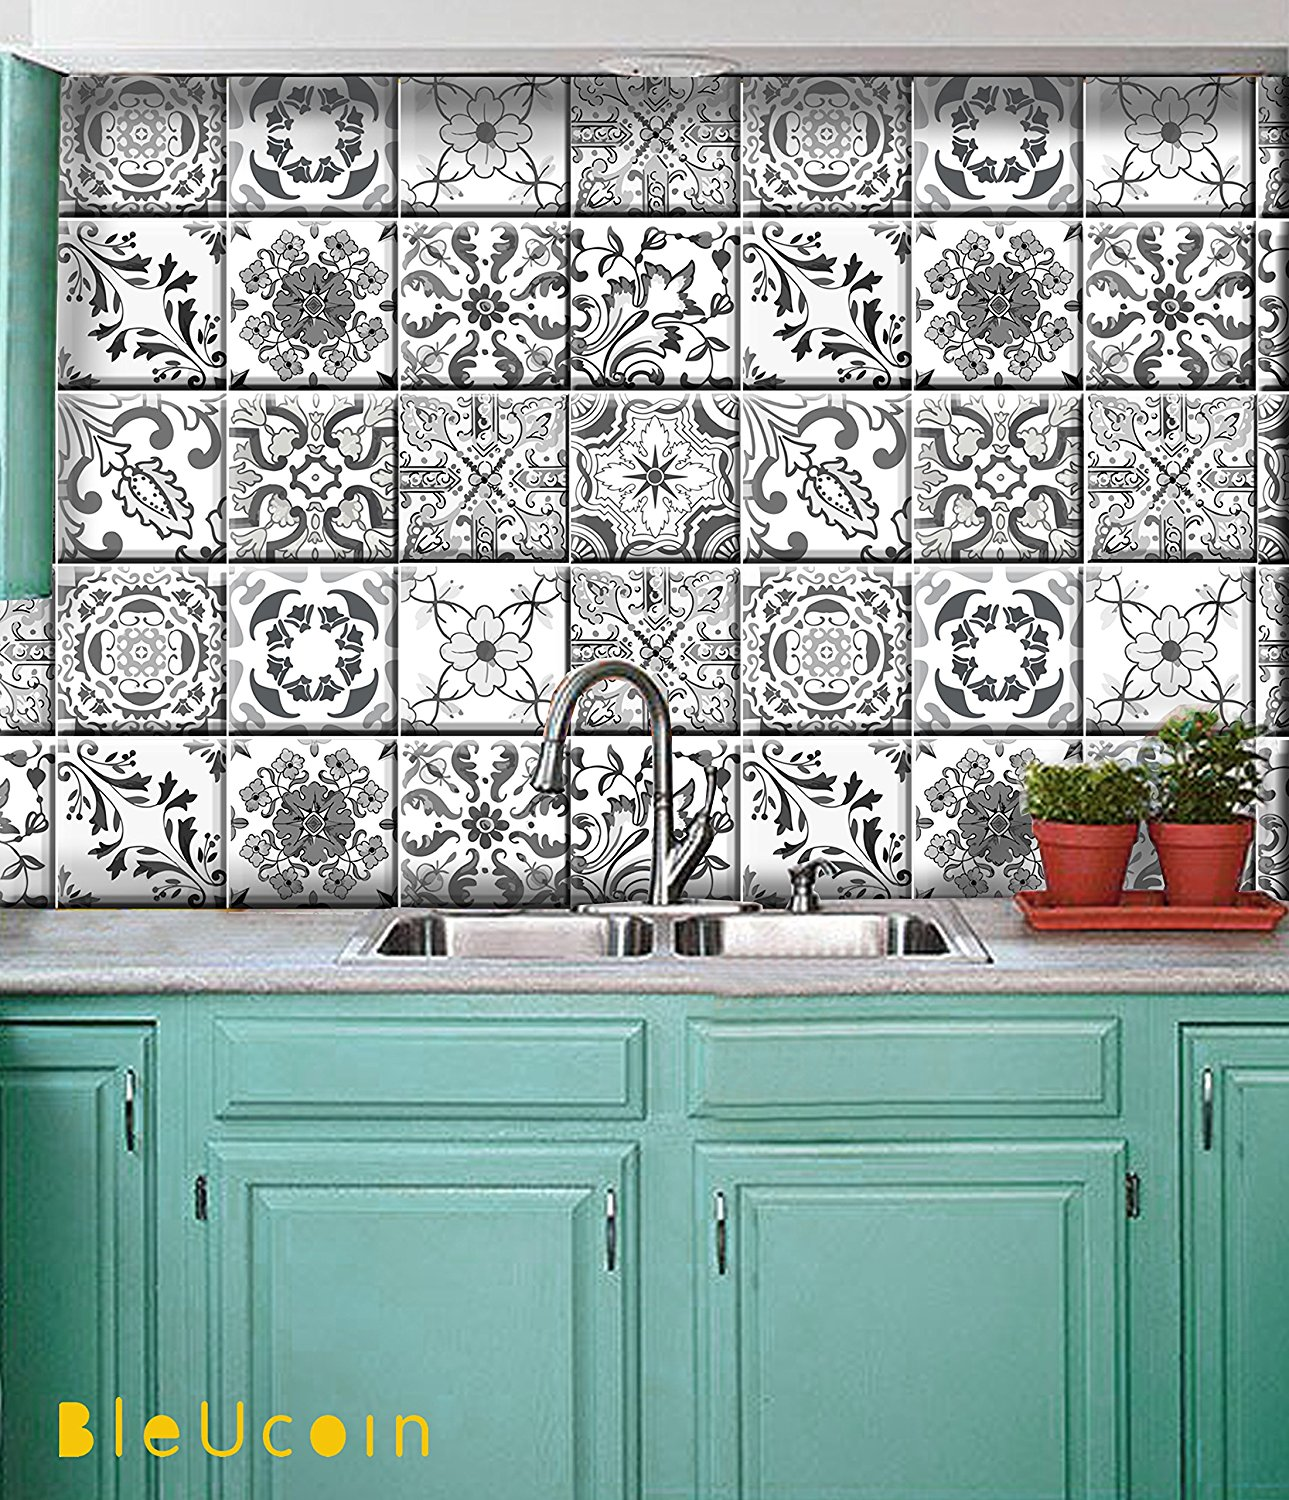 Portugal Inspired Tile Stickers. Basement Restoration Technologies. Basement Ideas Cheap. Install Bathroom In Basement. How To Remodel A Basement On A Budget. Water Seeping Through Basement Wall. Basement Atlanta. Building A Soffit In Basement. Basement Storage Cabinets